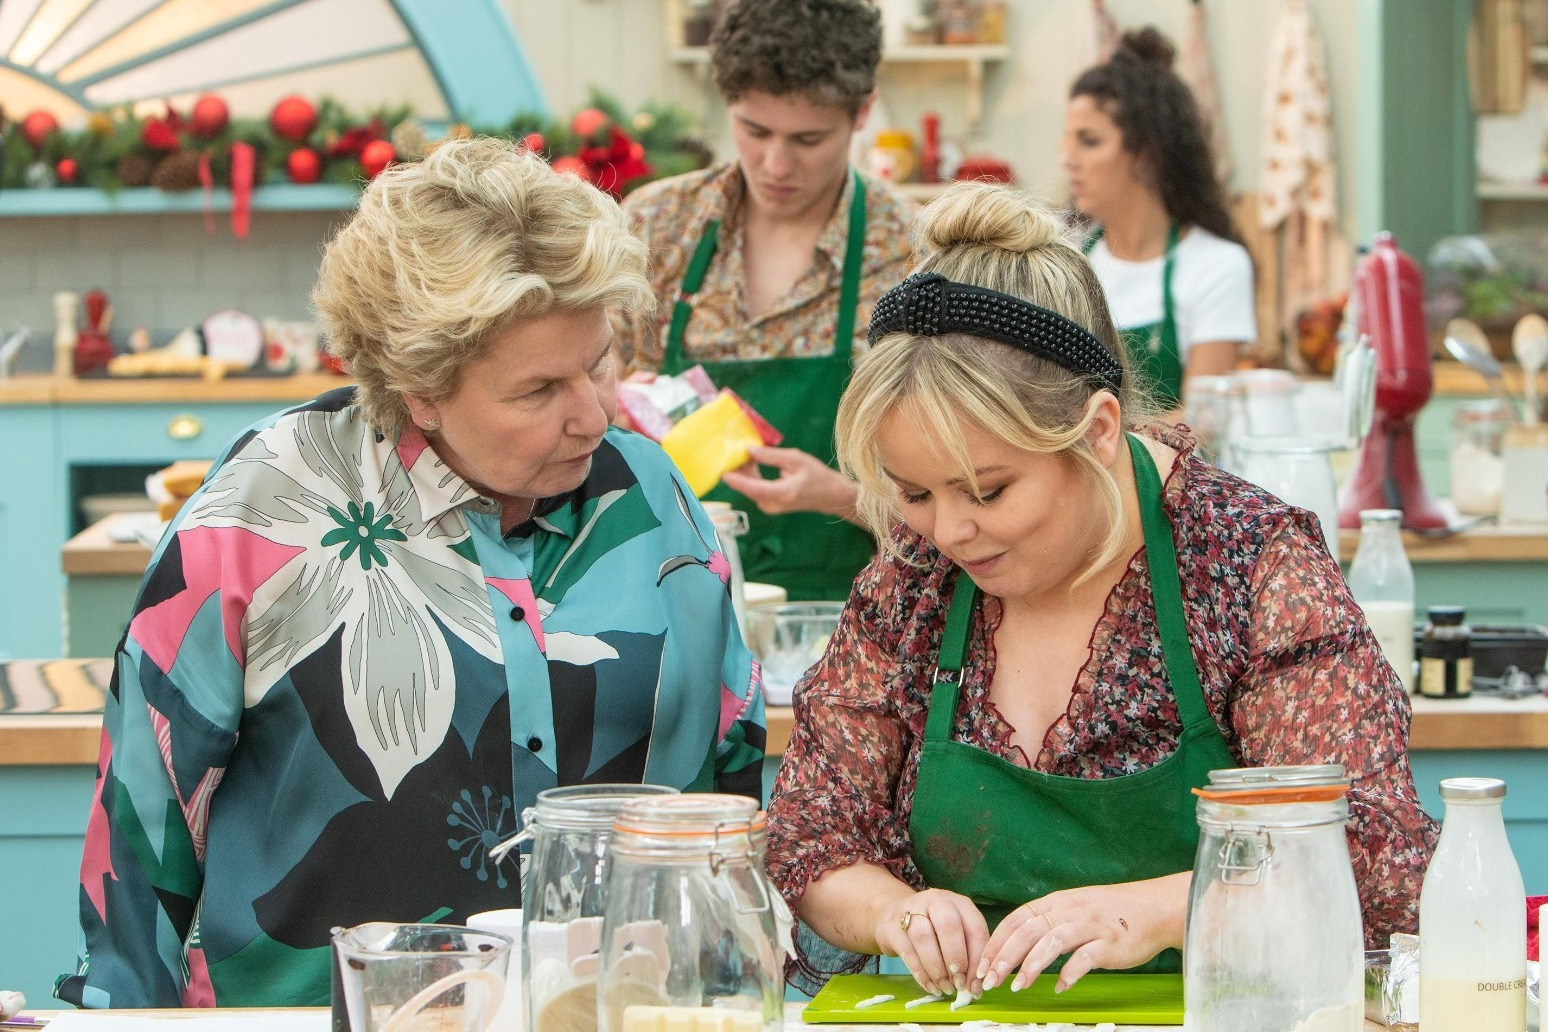 DERRY GIRLS SPECIAL OF THE GREAT BRITISH BAKE OFF CROWNS WINNER